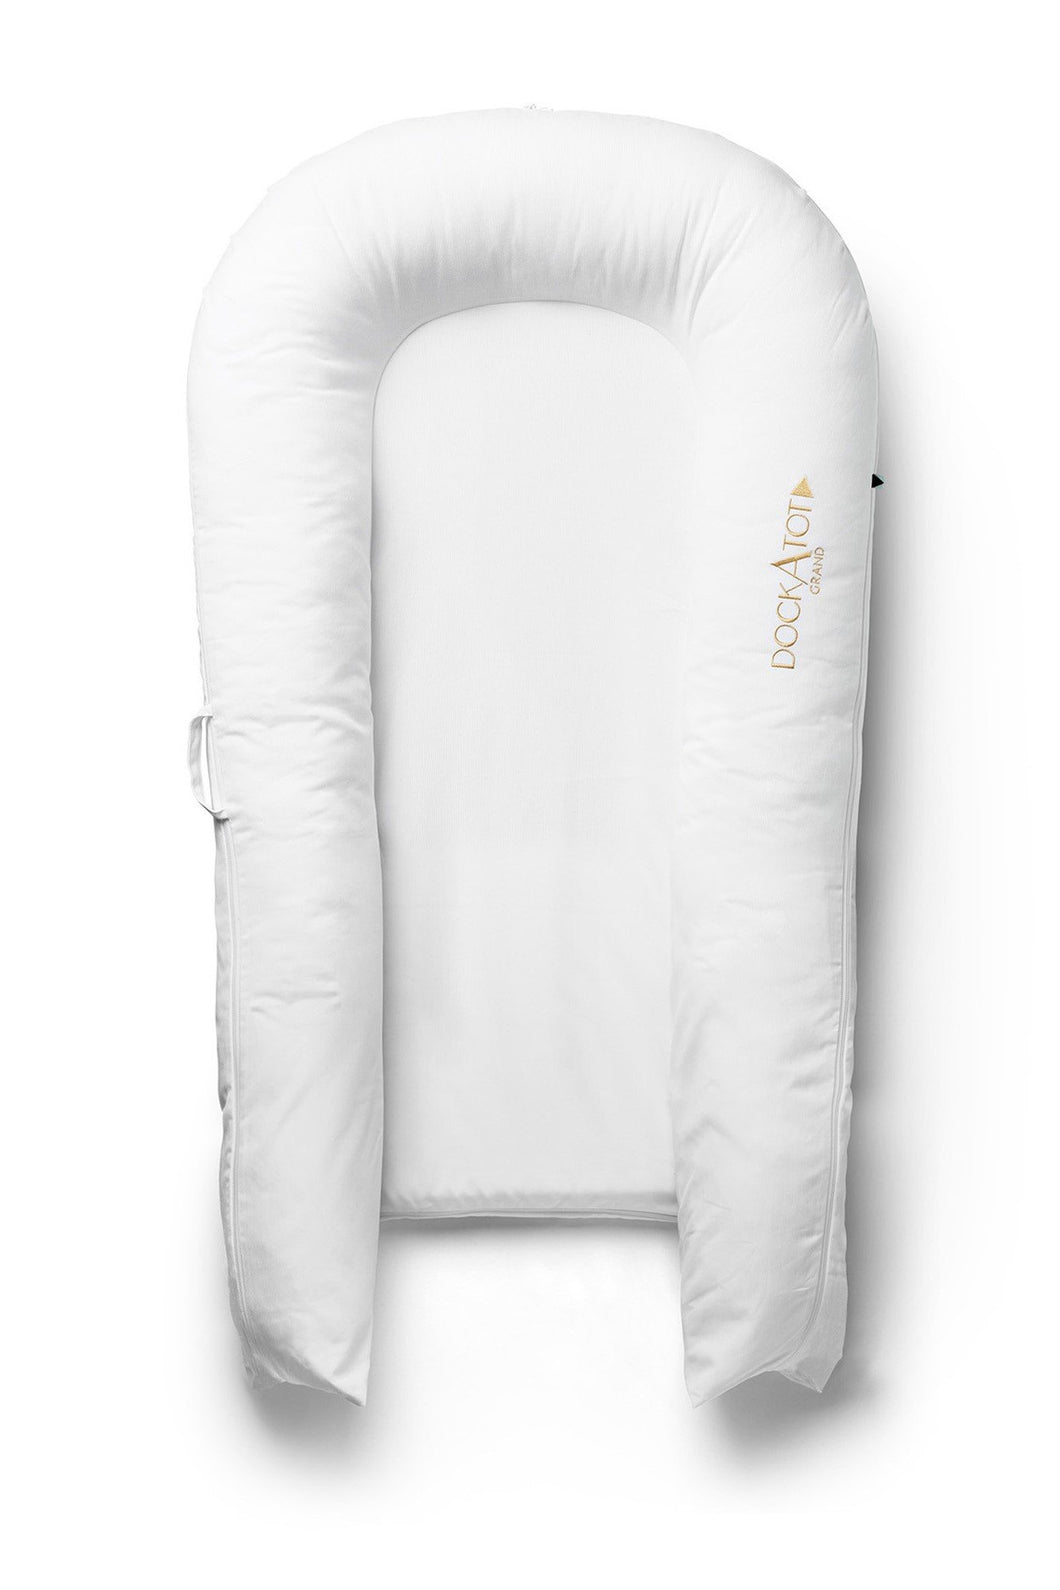 Spare Cover for DockATot Grand - Pristine White